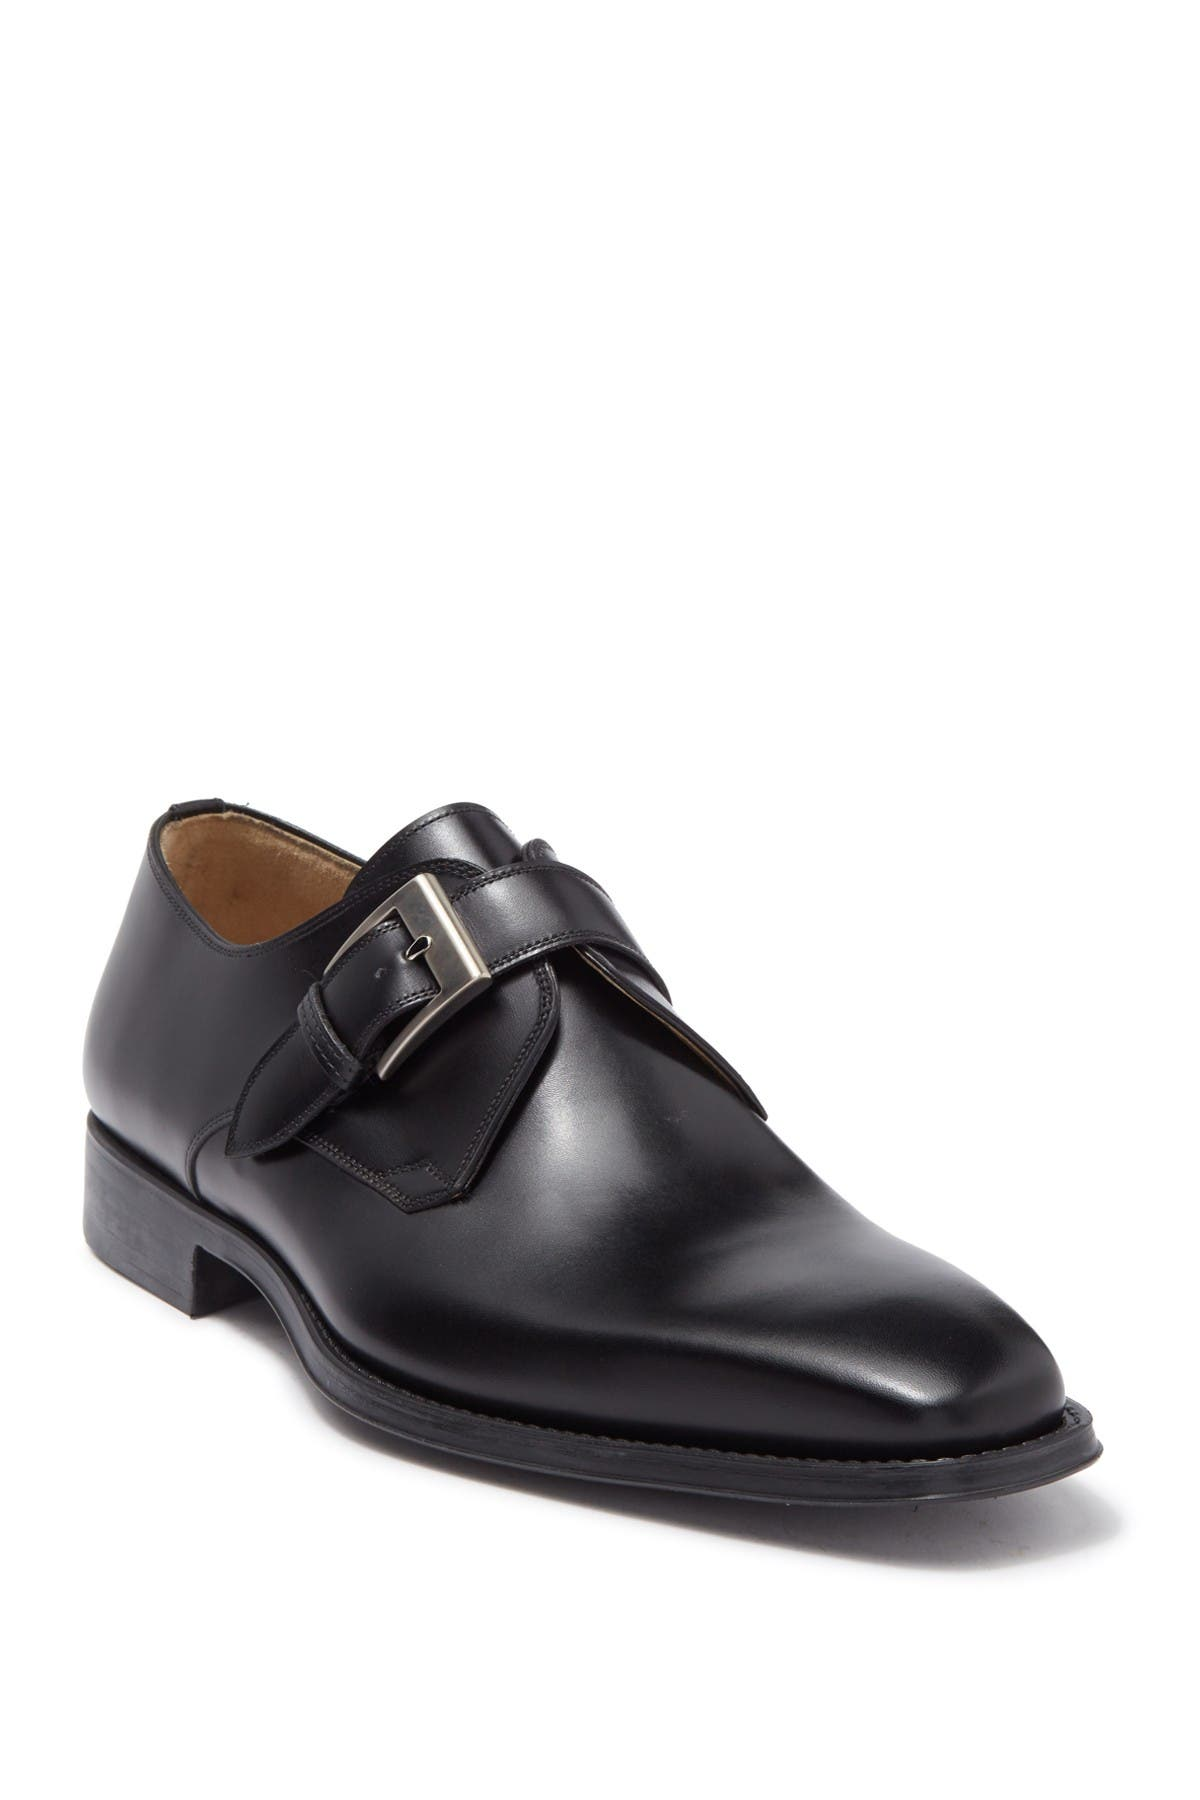 Image of Magnanni Mercury Square Toe Strap Derby - Wide Width Available